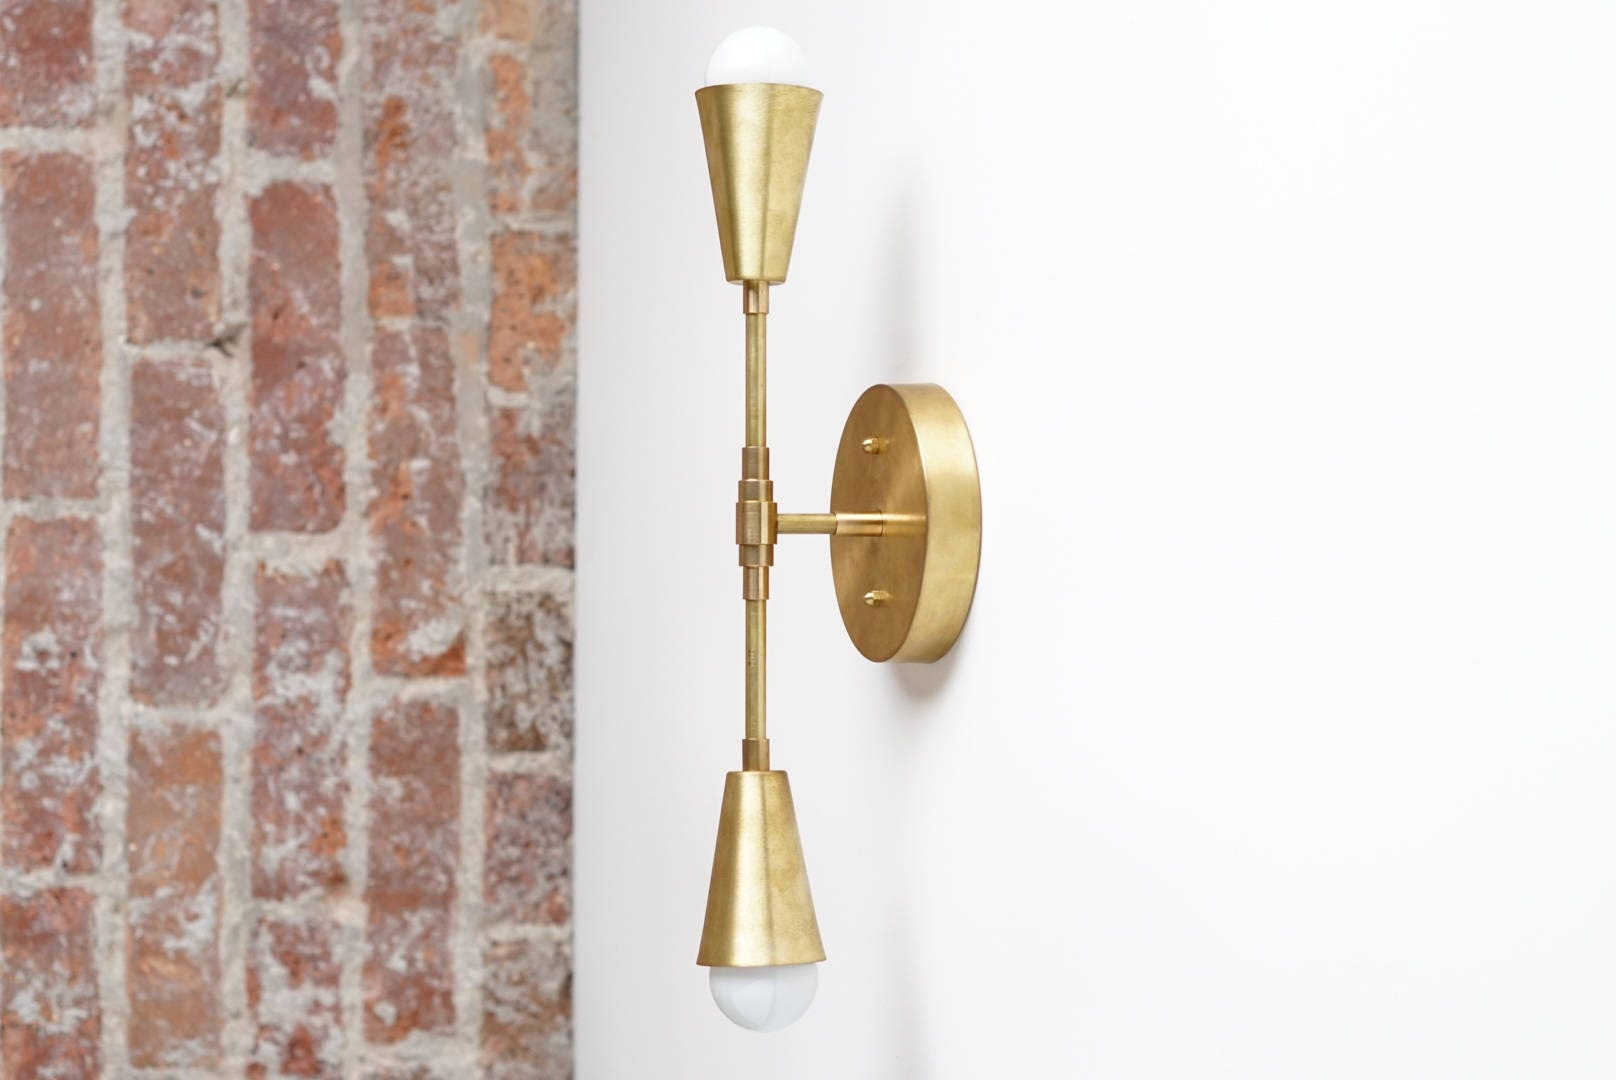 Brass sconce light wall sconce modern sconces gold wall zoom amipublicfo Choice Image